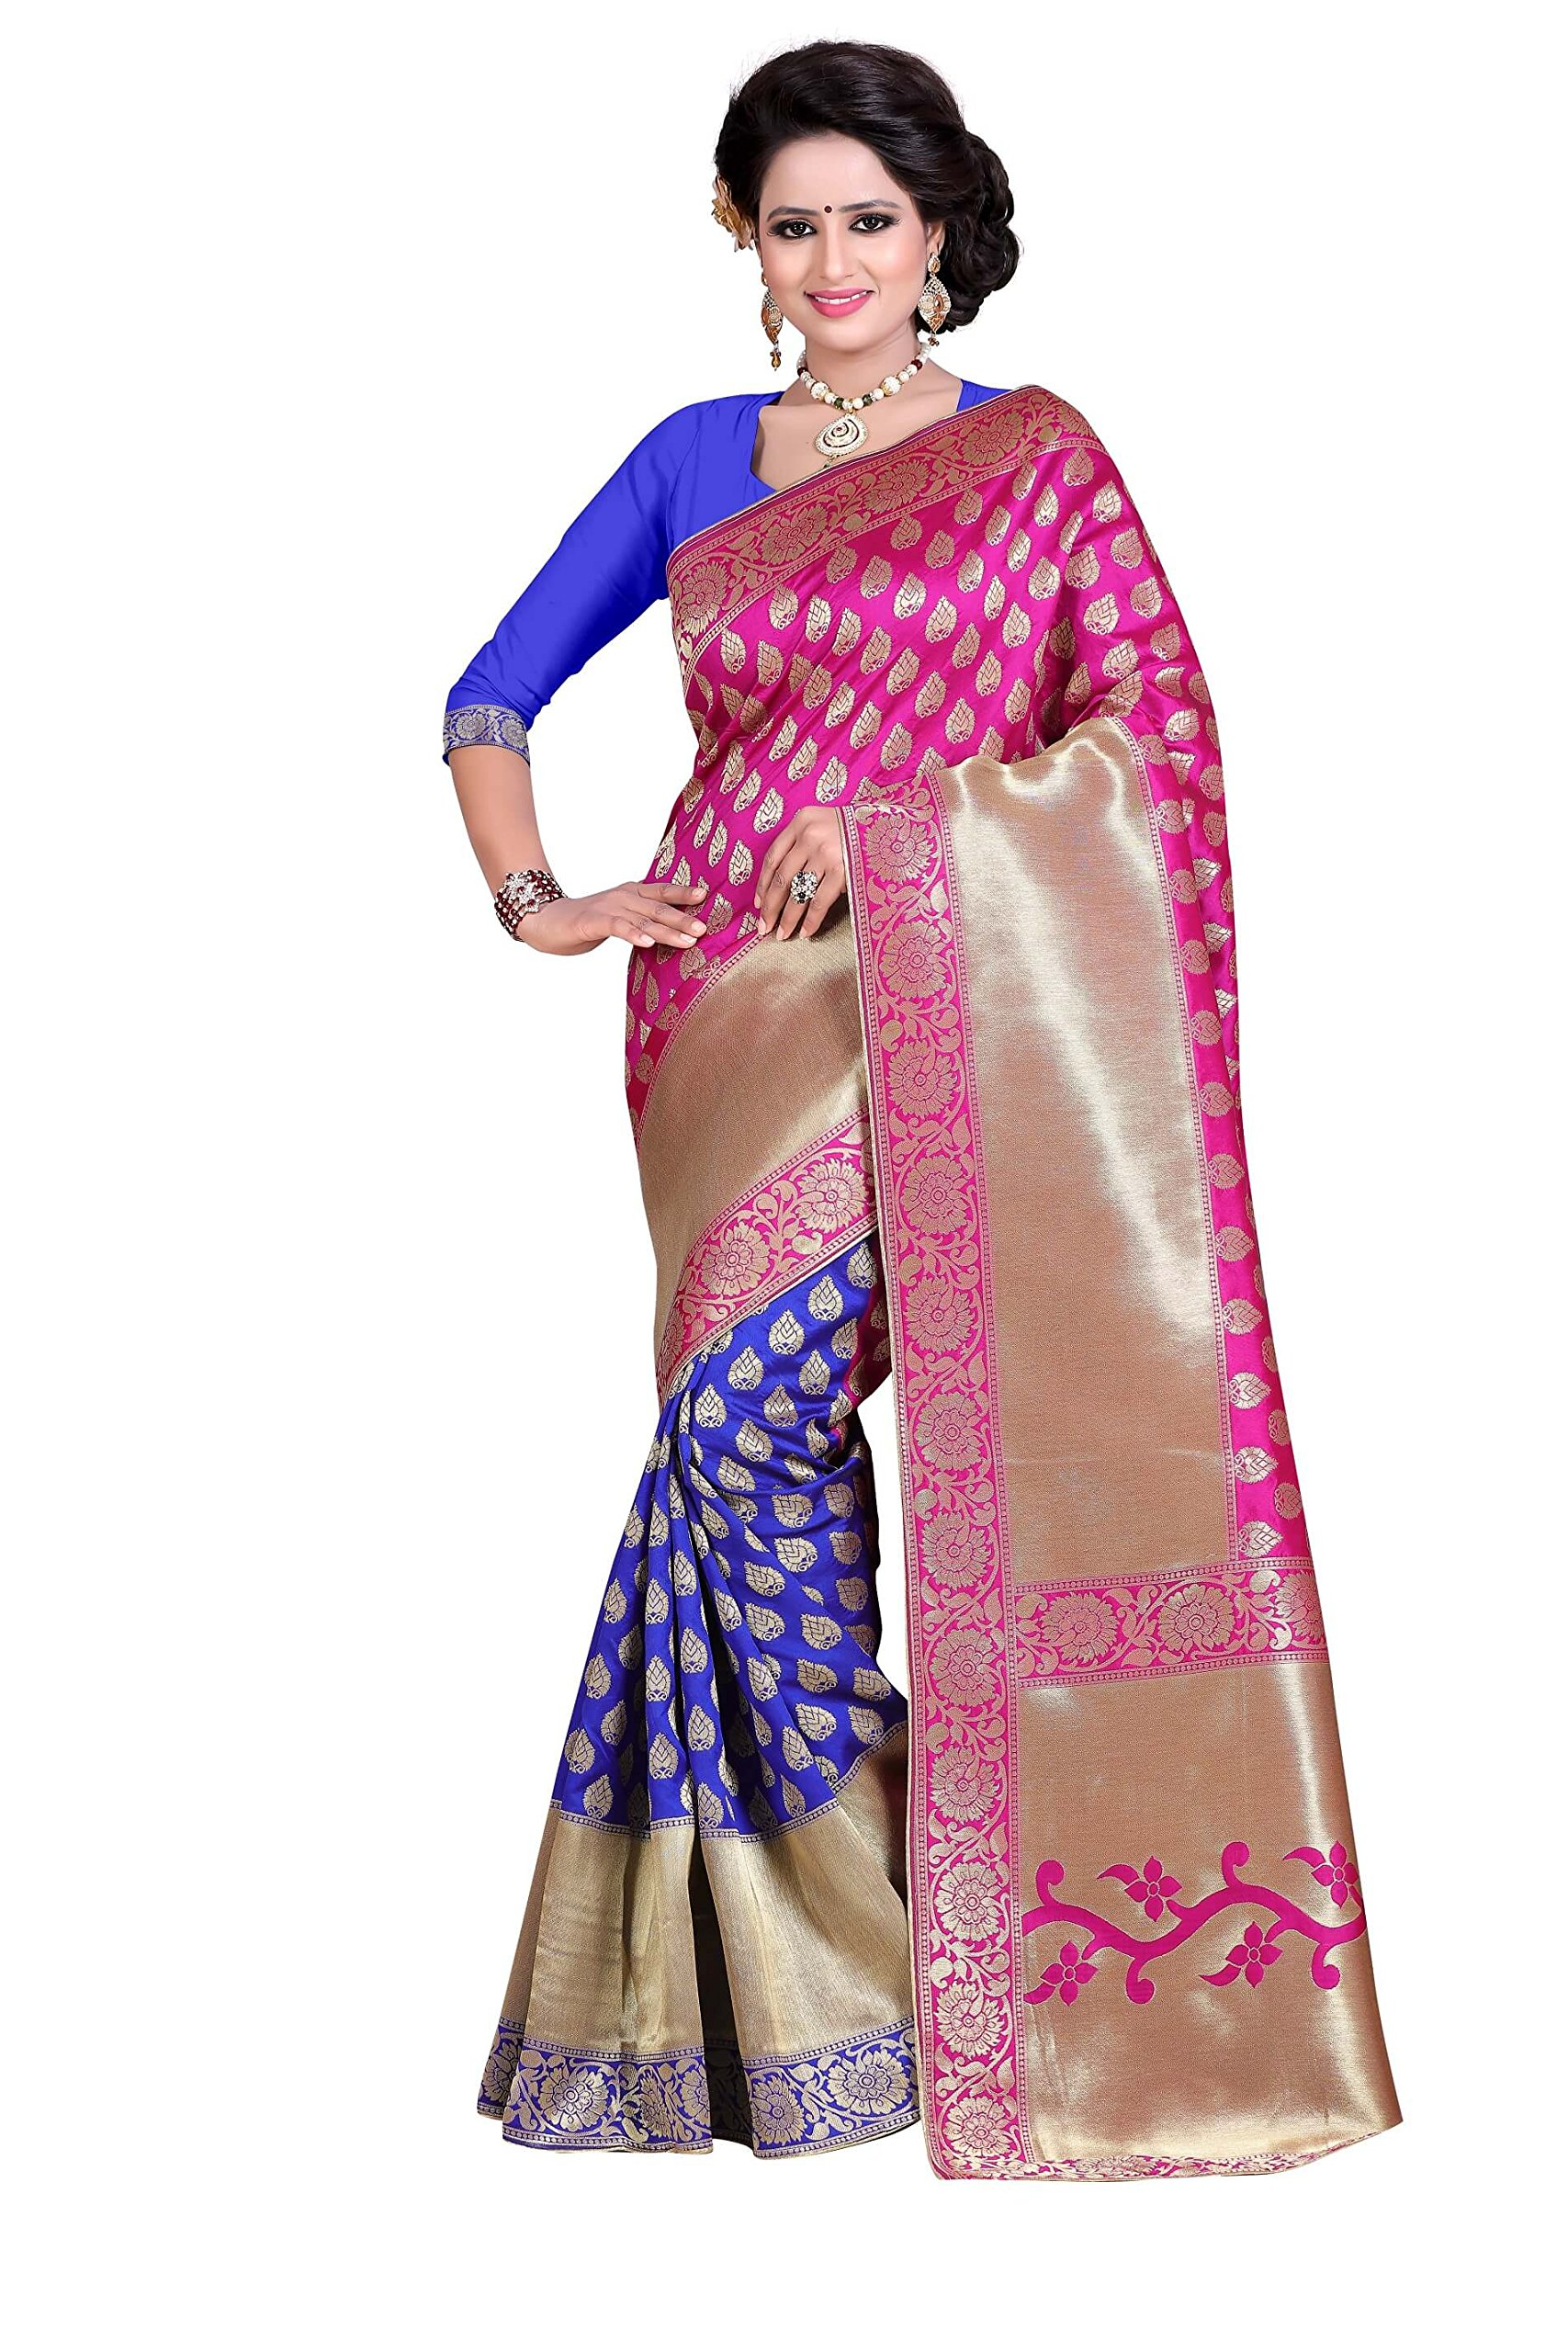 Rajnandini Women's Banarasi Silk Weaving Work Saree(JOPLLB1025_Pink And Blue_Free Size)